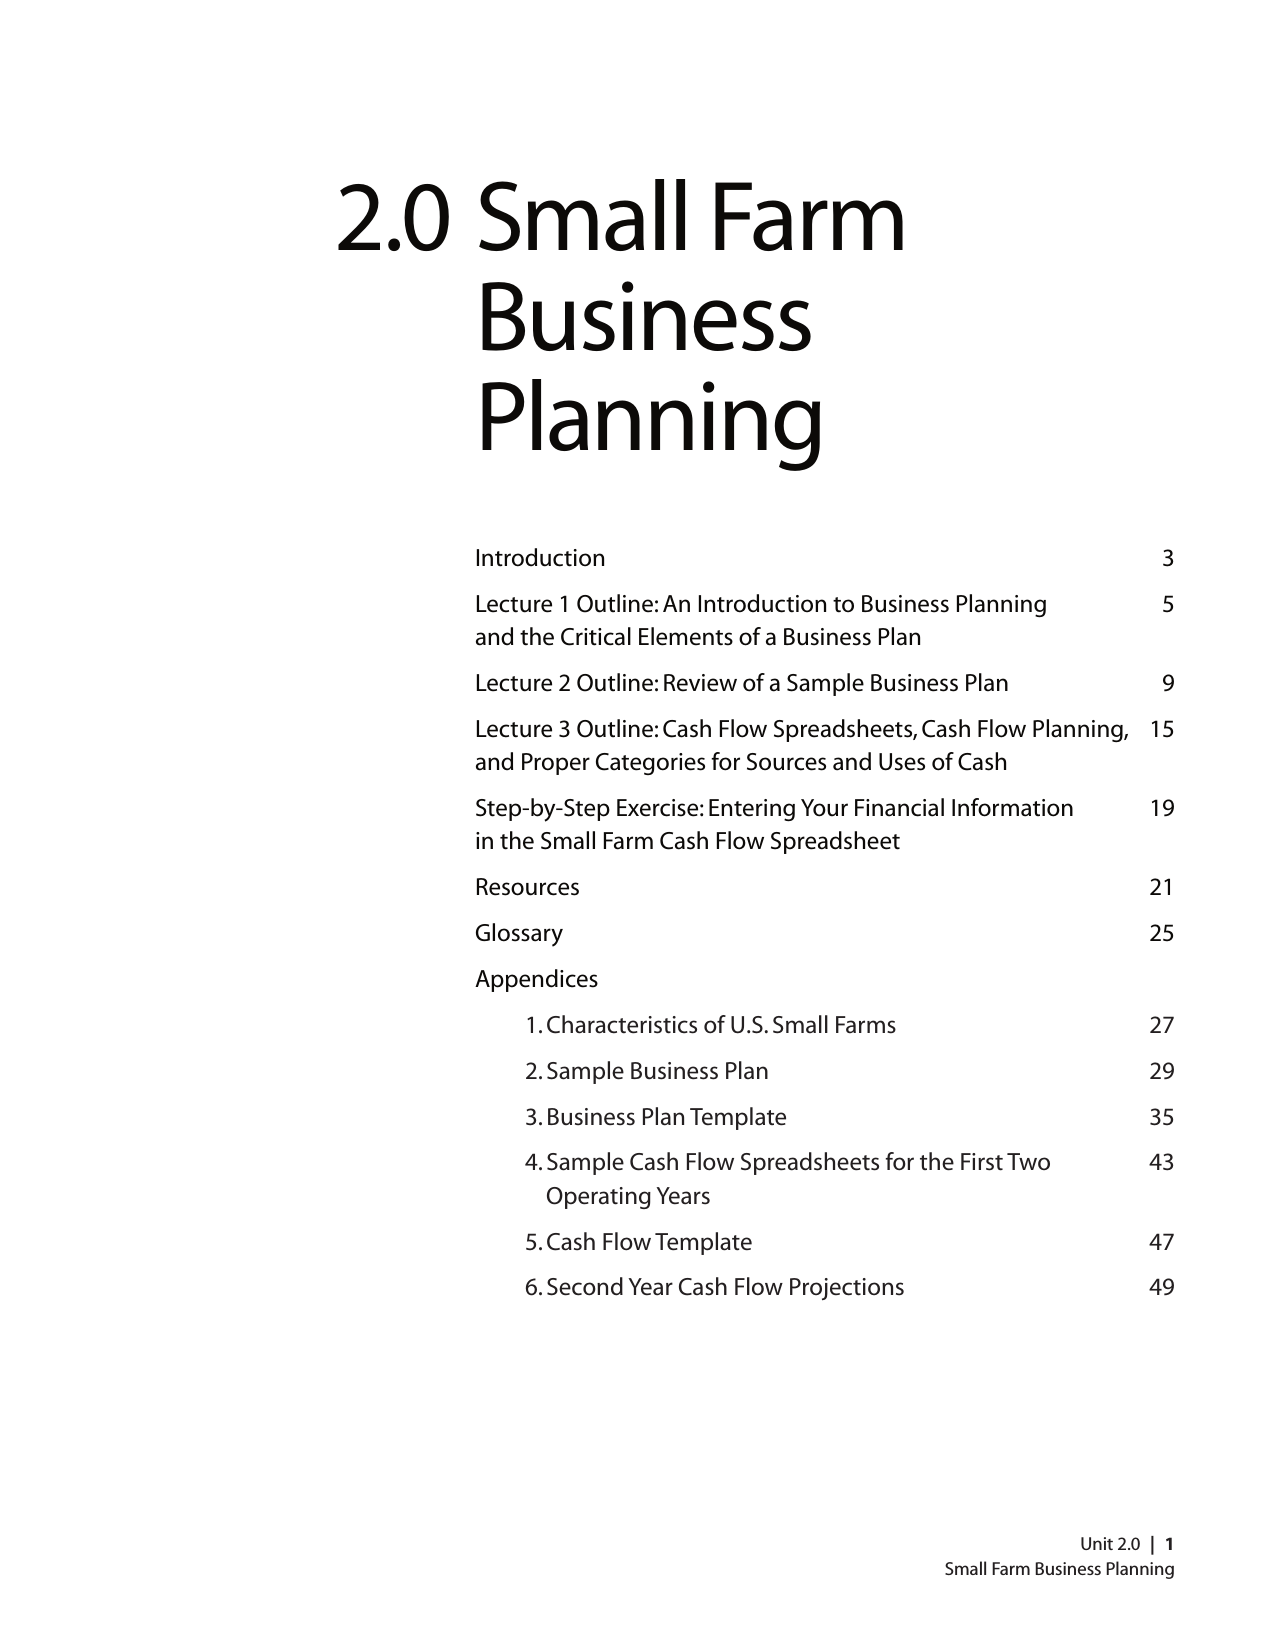 Writing a small farm business plan » Essays on china